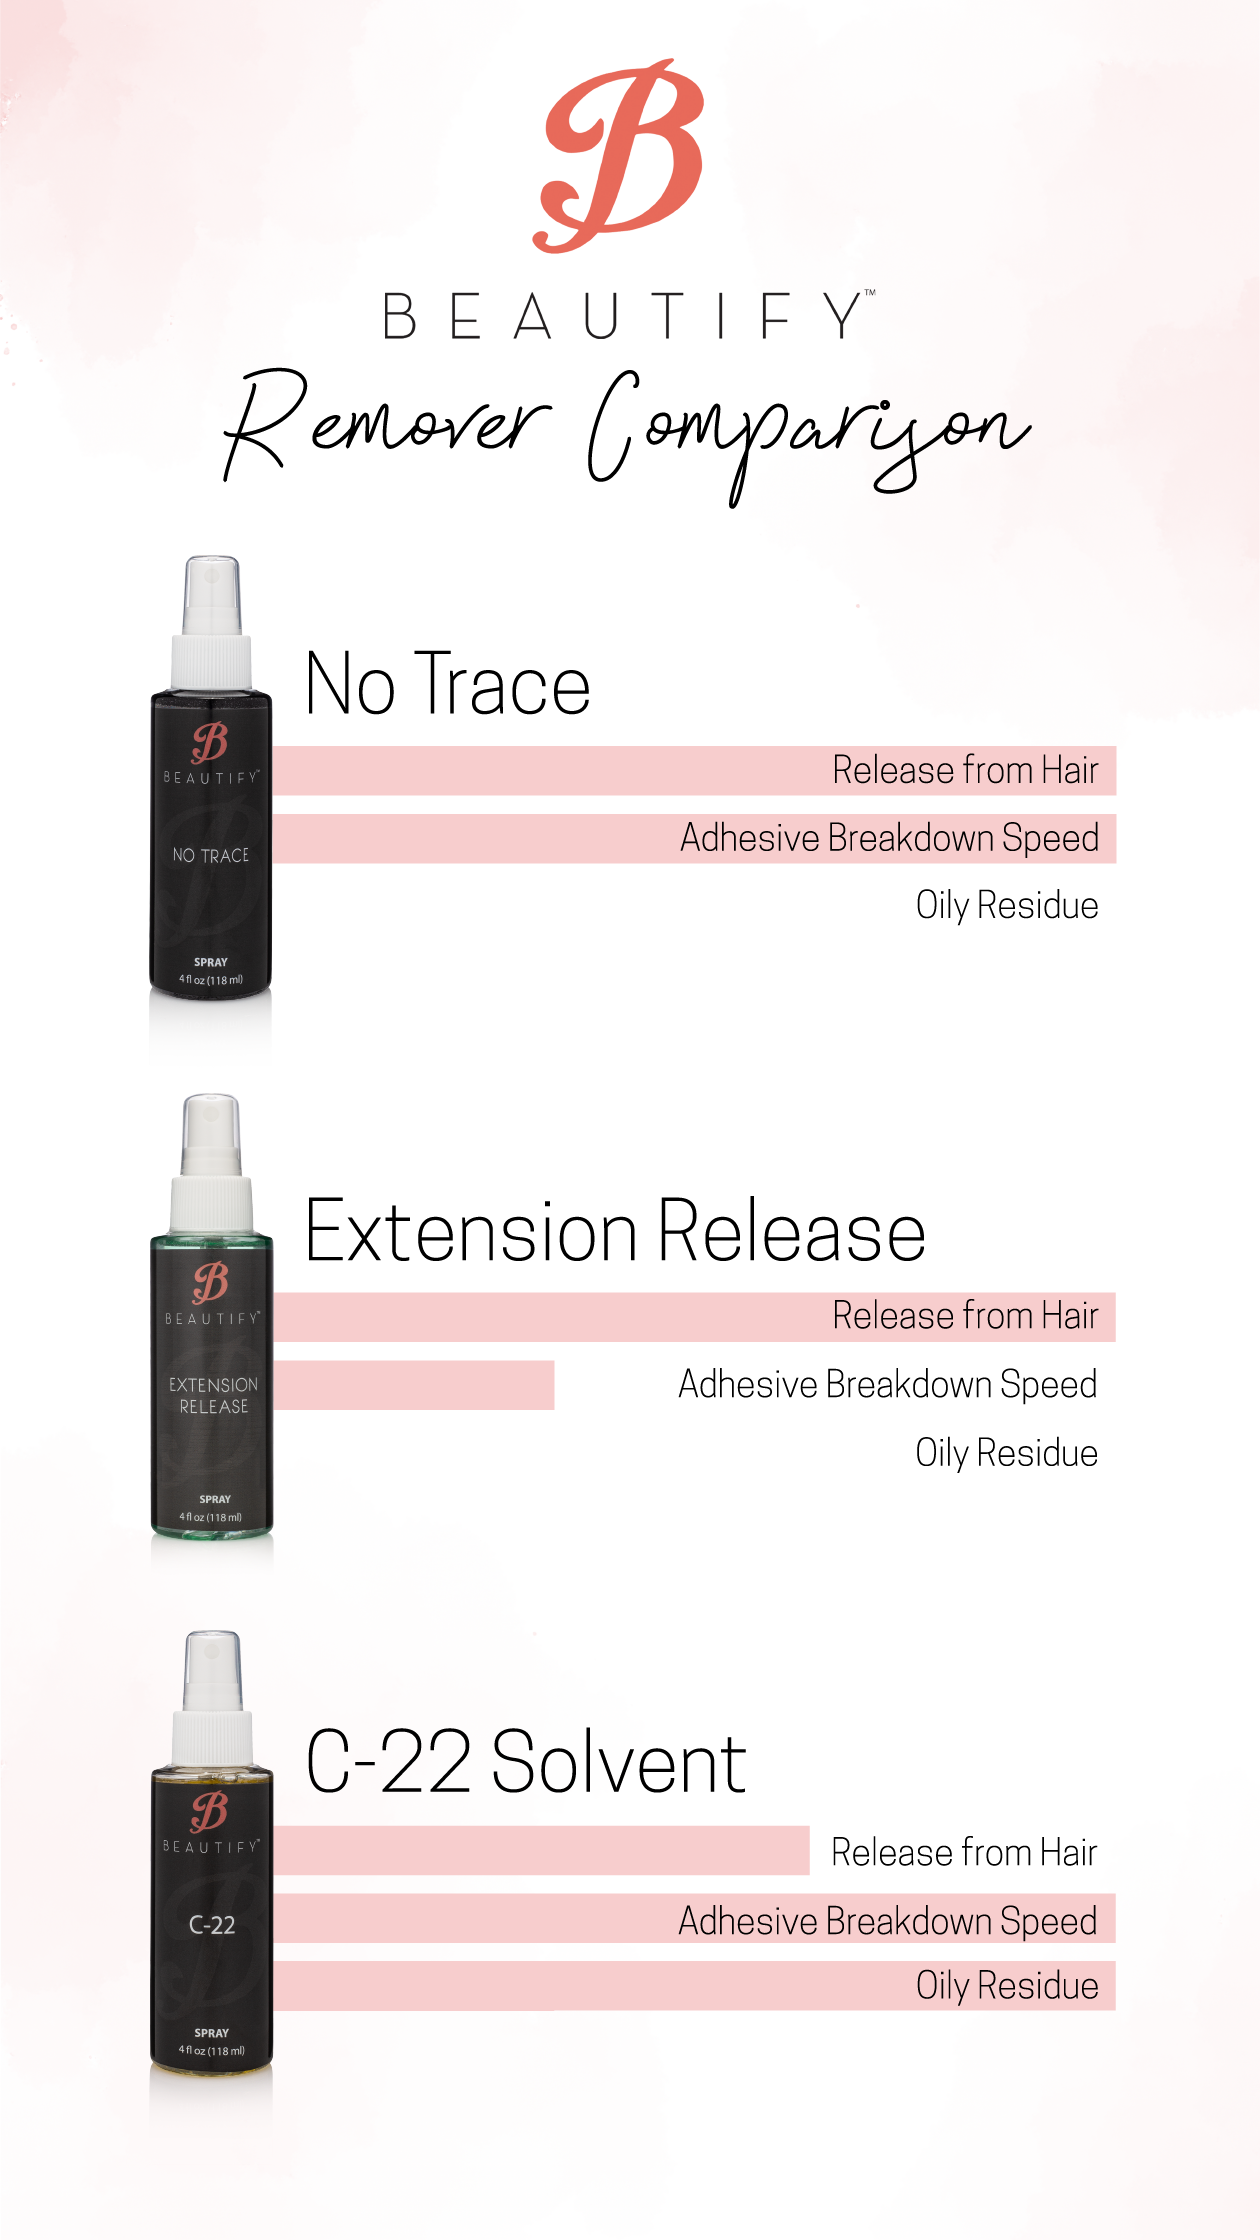 Beautify Removers Comparison